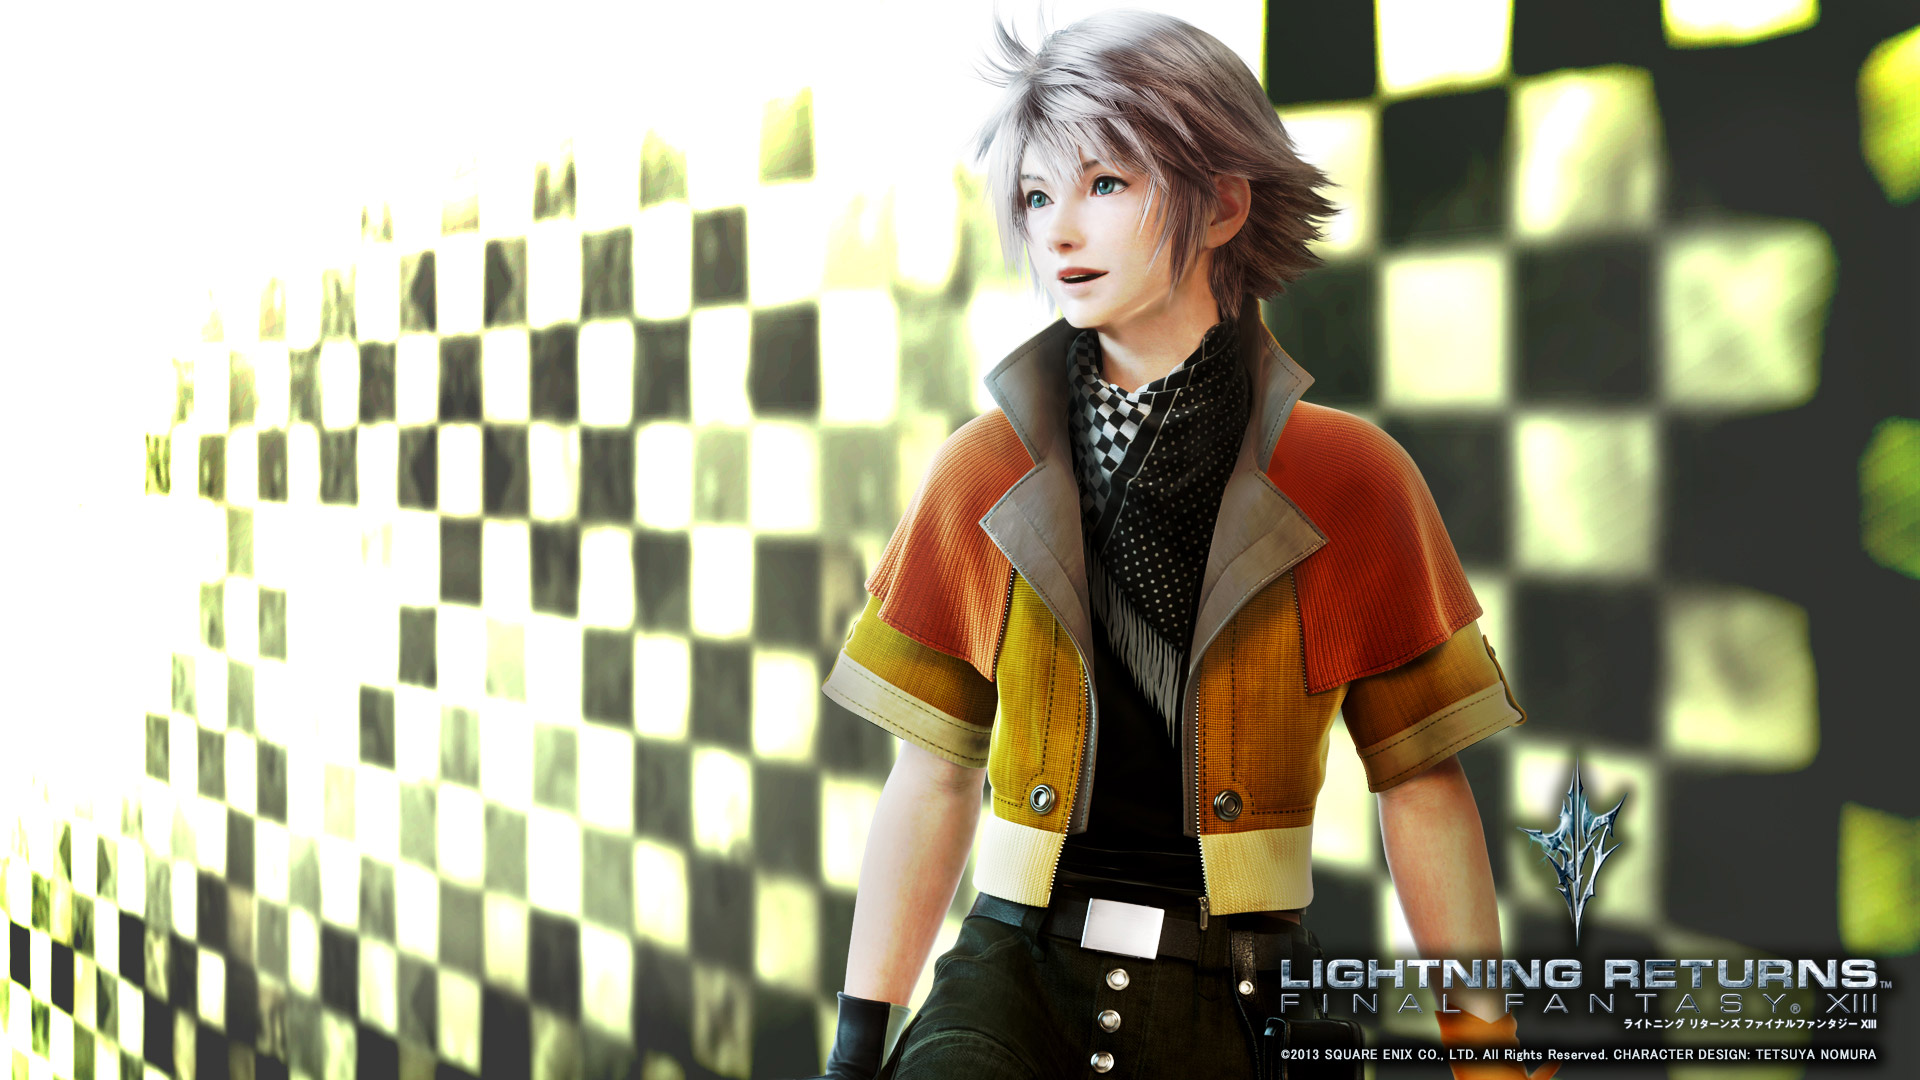 Lightning Returns: Final Fantasy XIII Wallpaper in 1920x1080